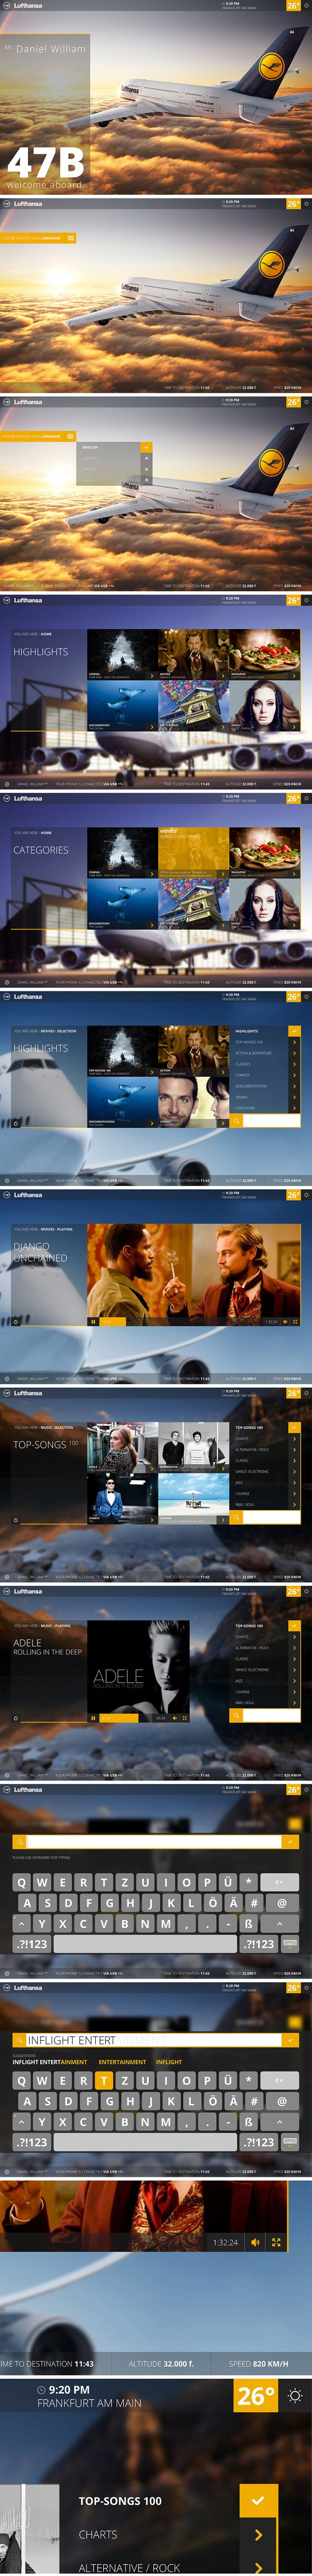 Lufthansa Inflight Entertainment System by theartcore. ® Studio , via Behance